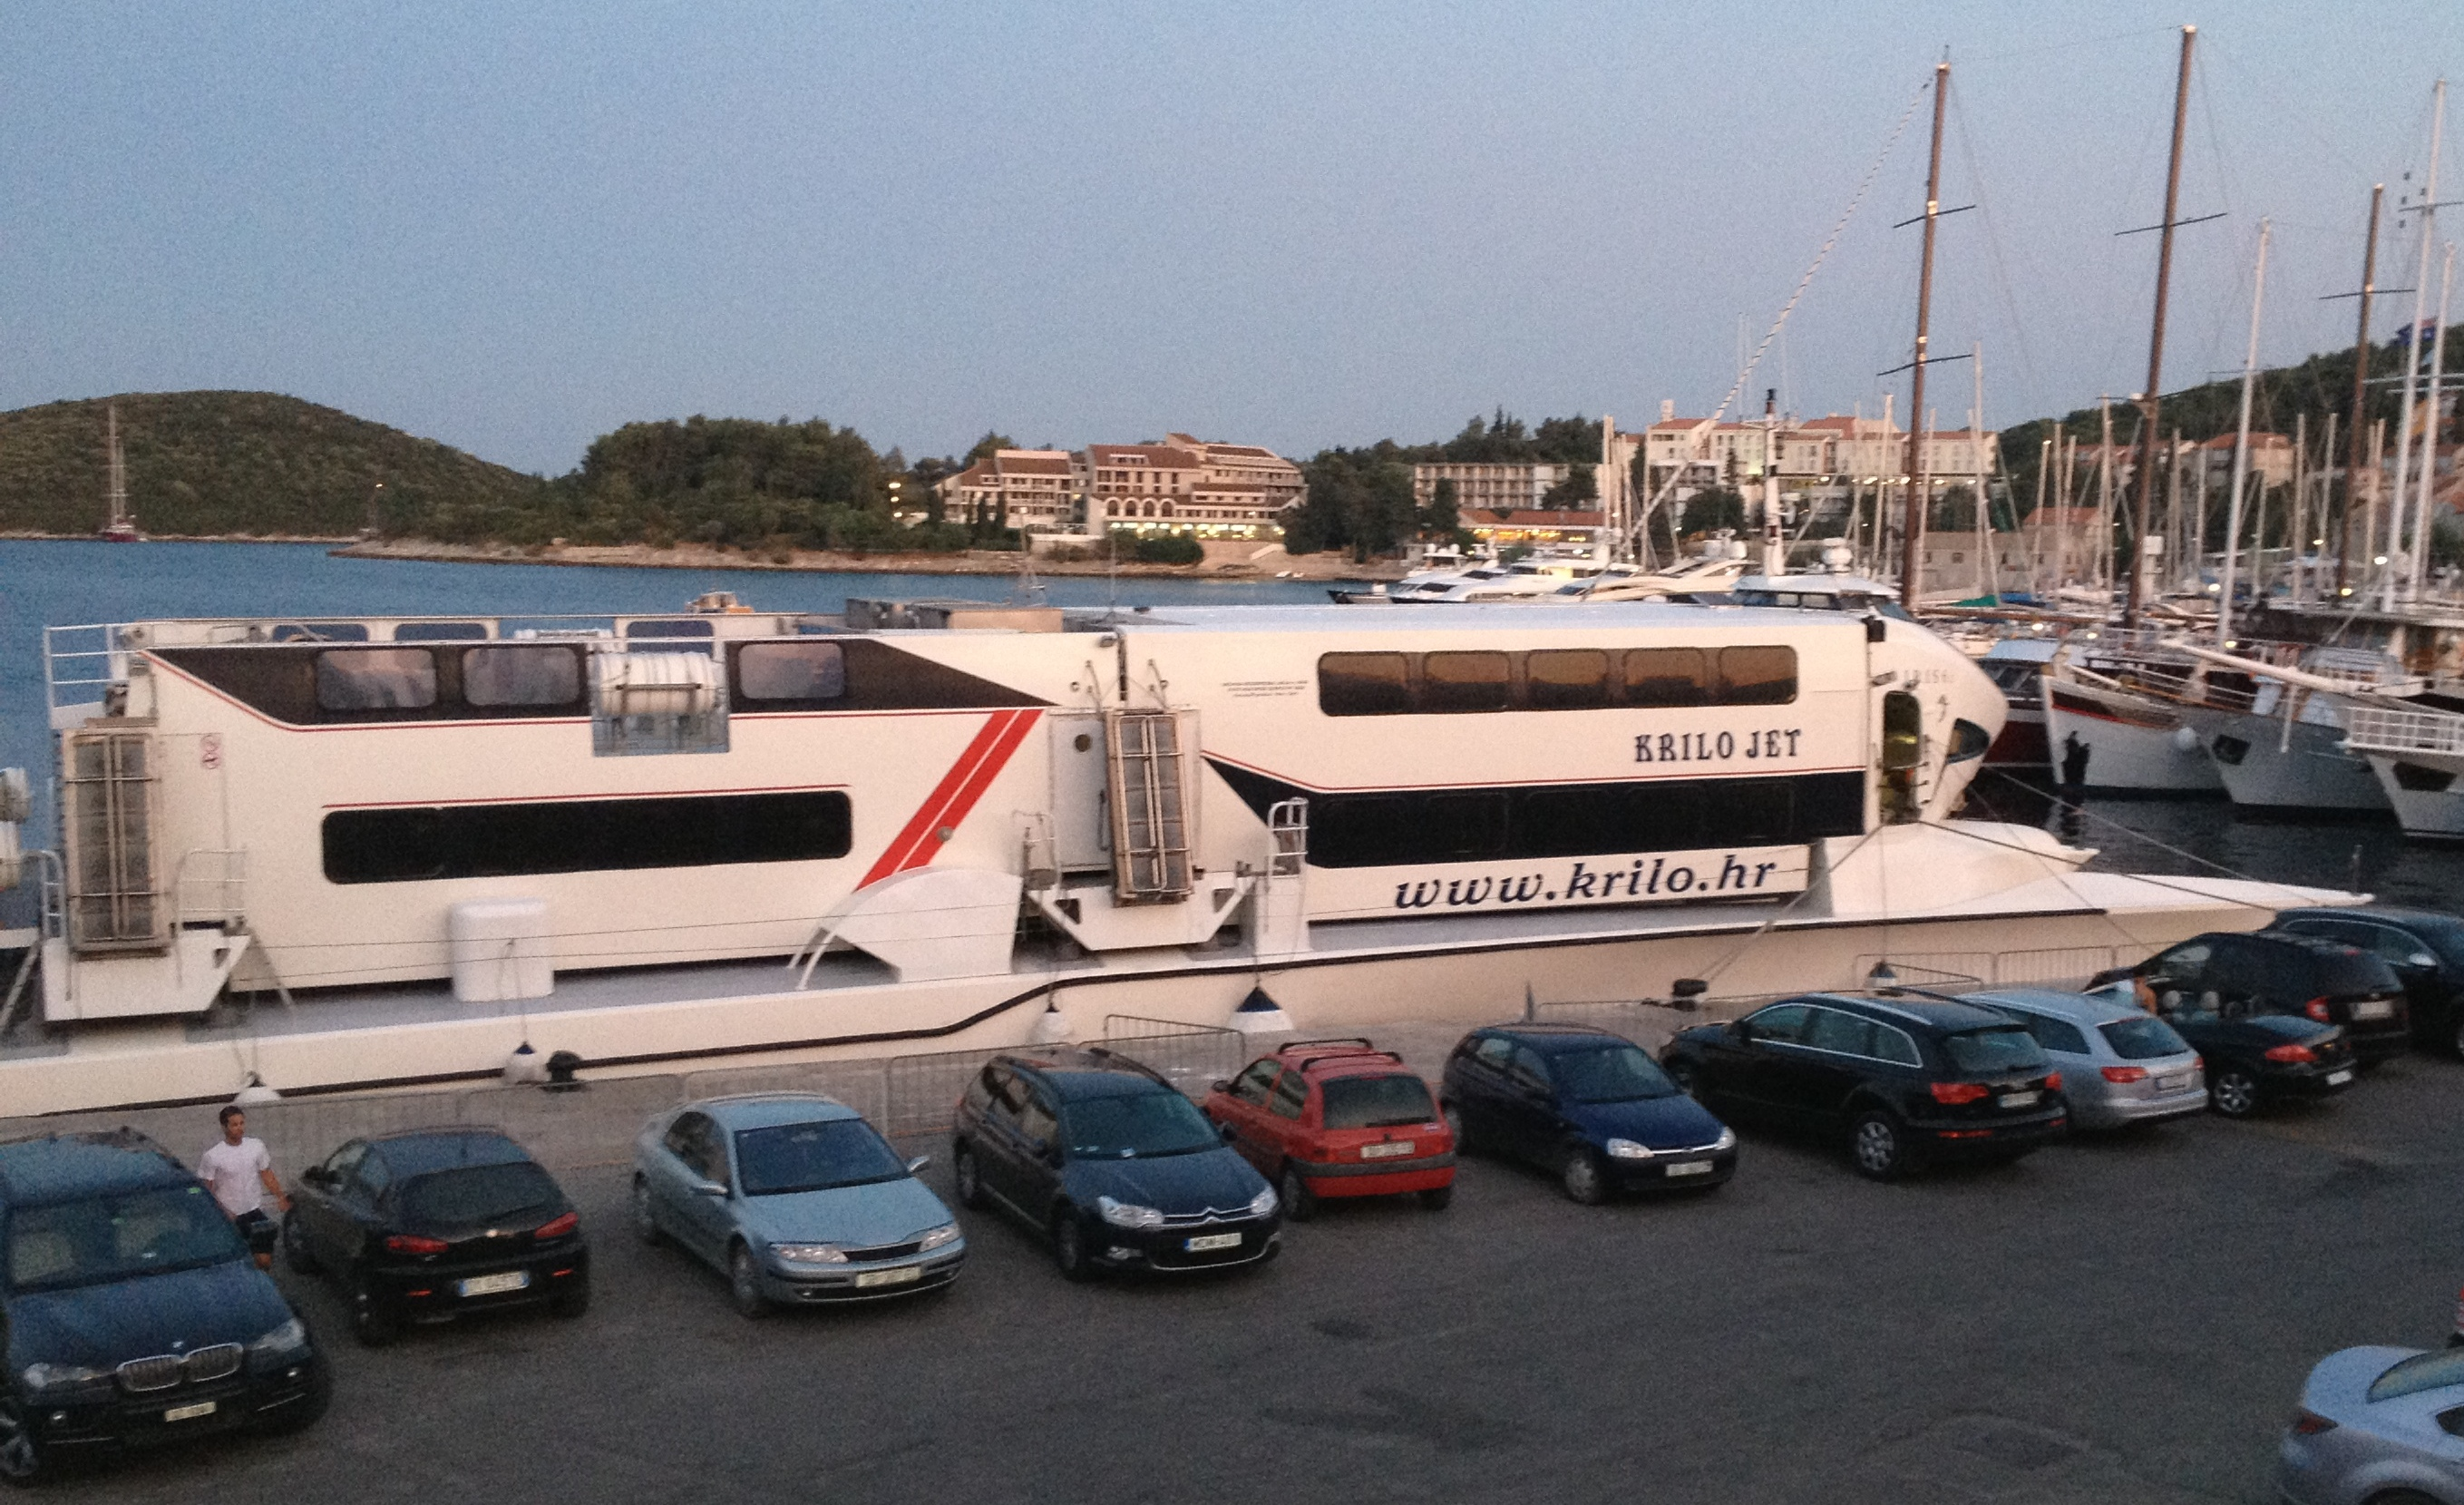 how to get from korcula to hvar